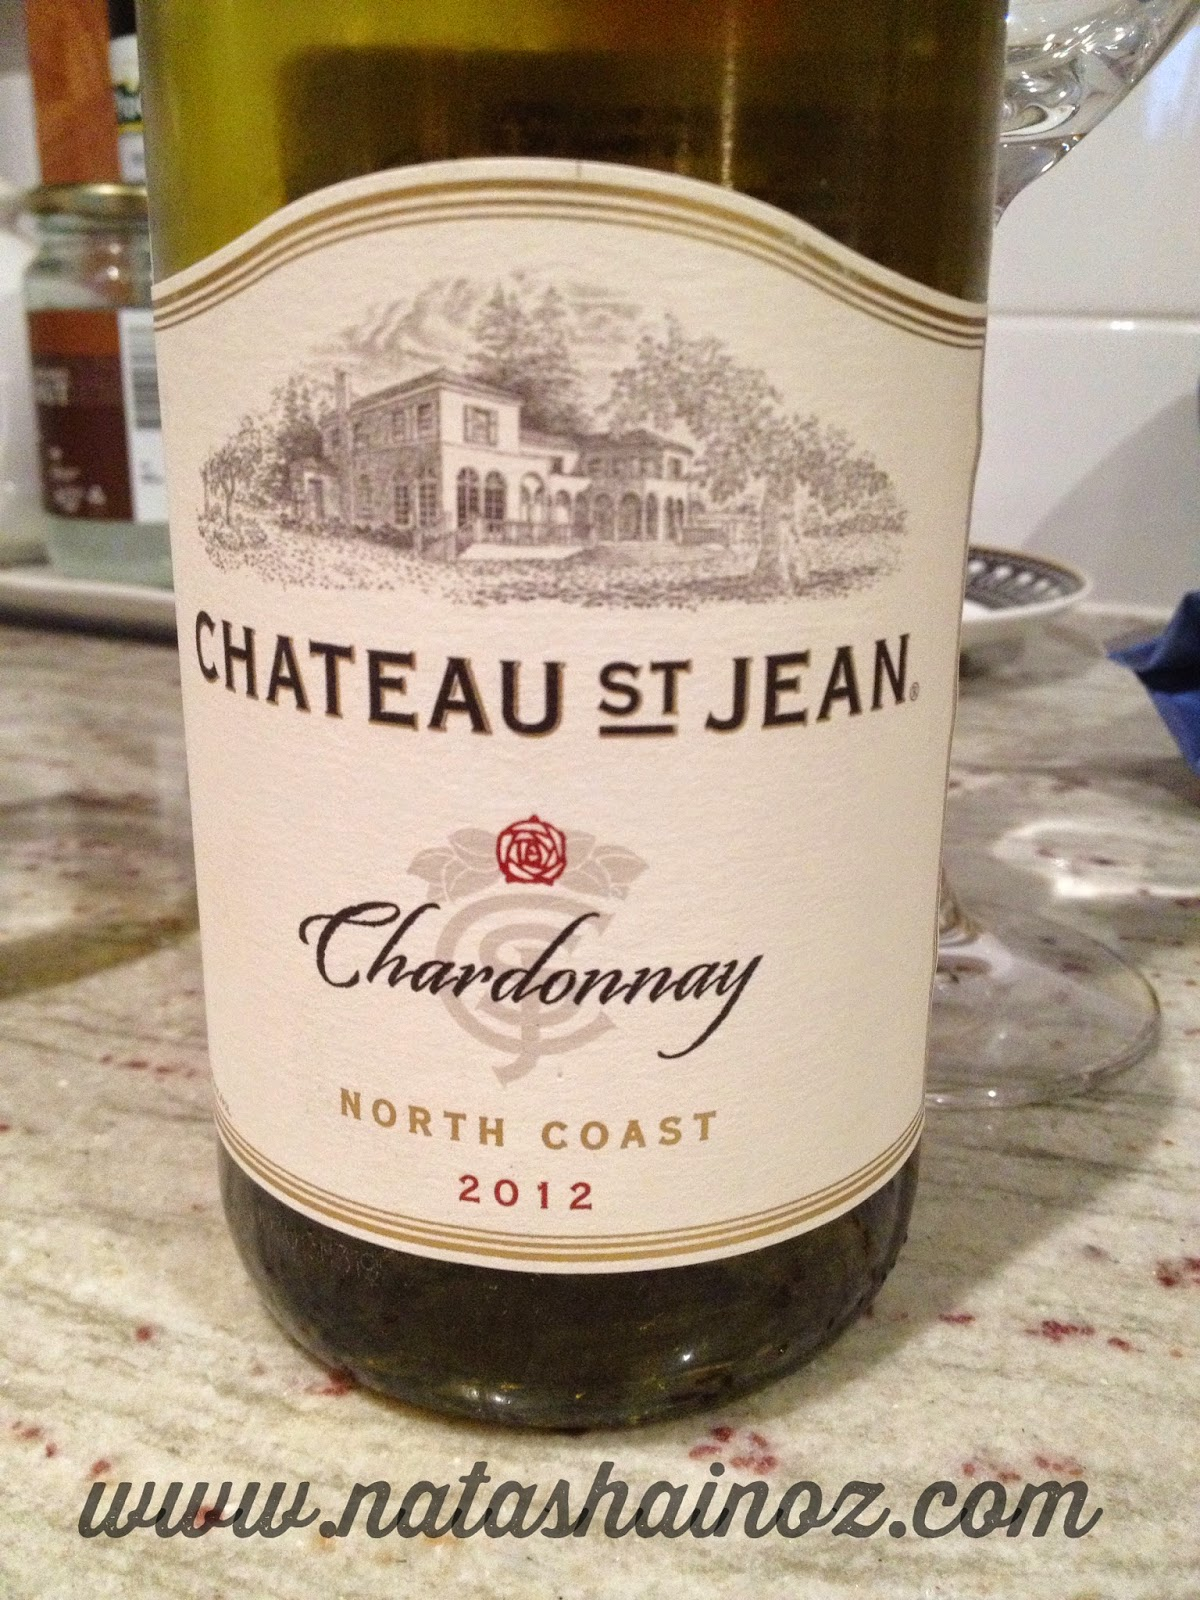 Say G'Day Linky Party, Chateau St Jean Chardonnay